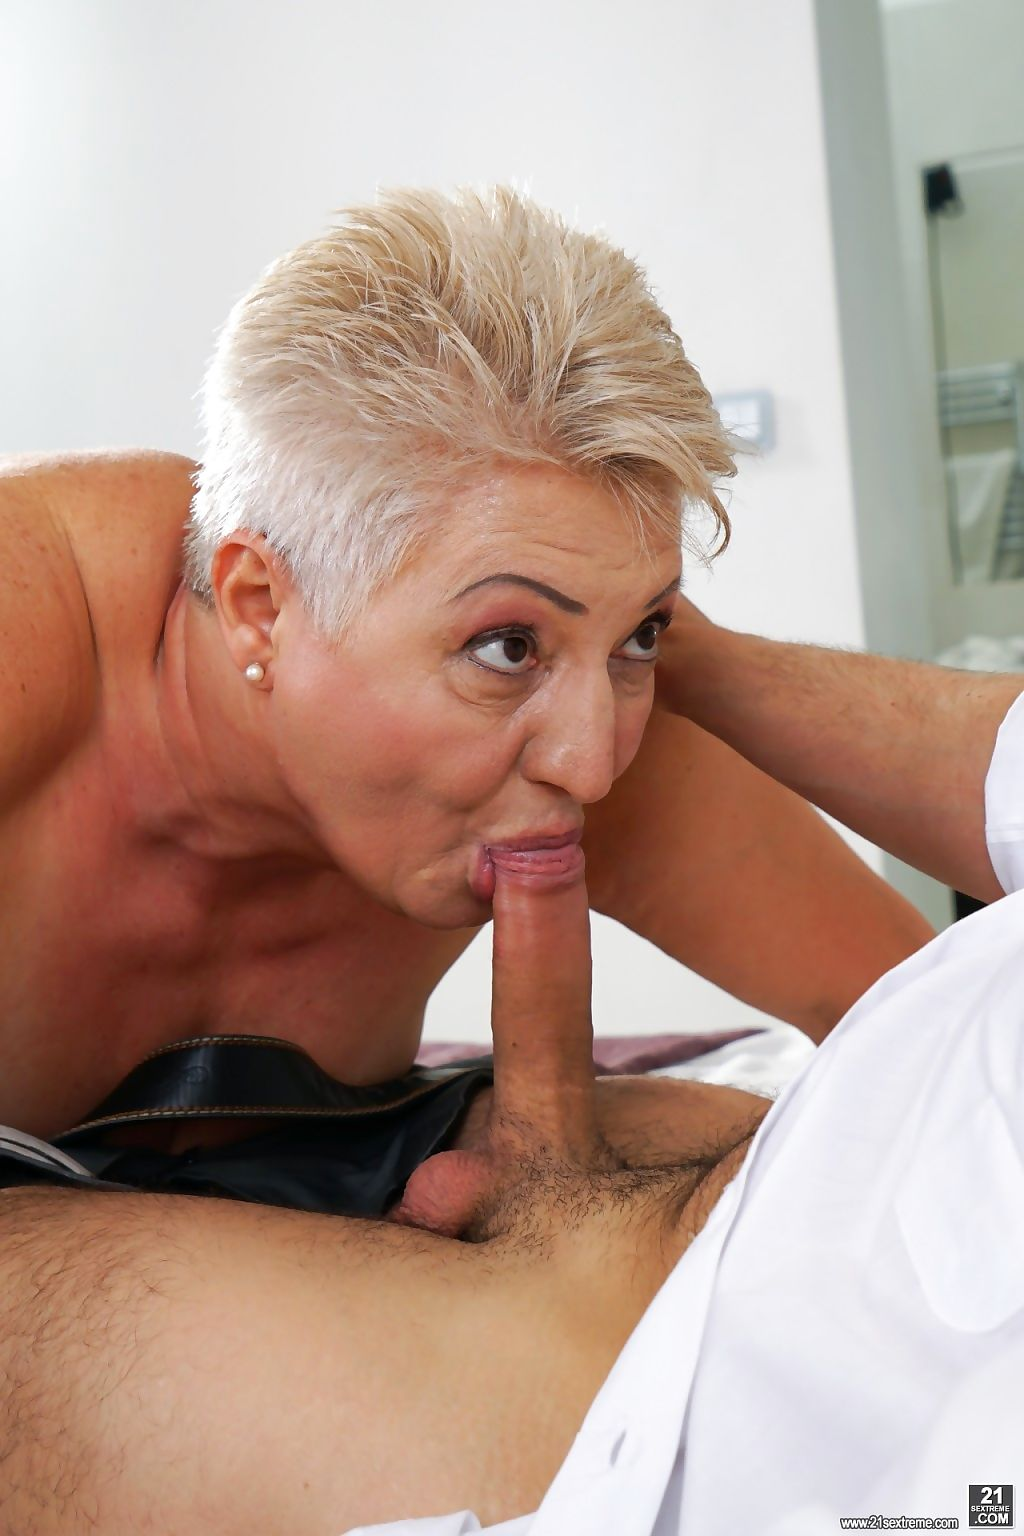 Hot and juicy granny astrid wants fresh cock deep inside her vintage pussy! - part 705